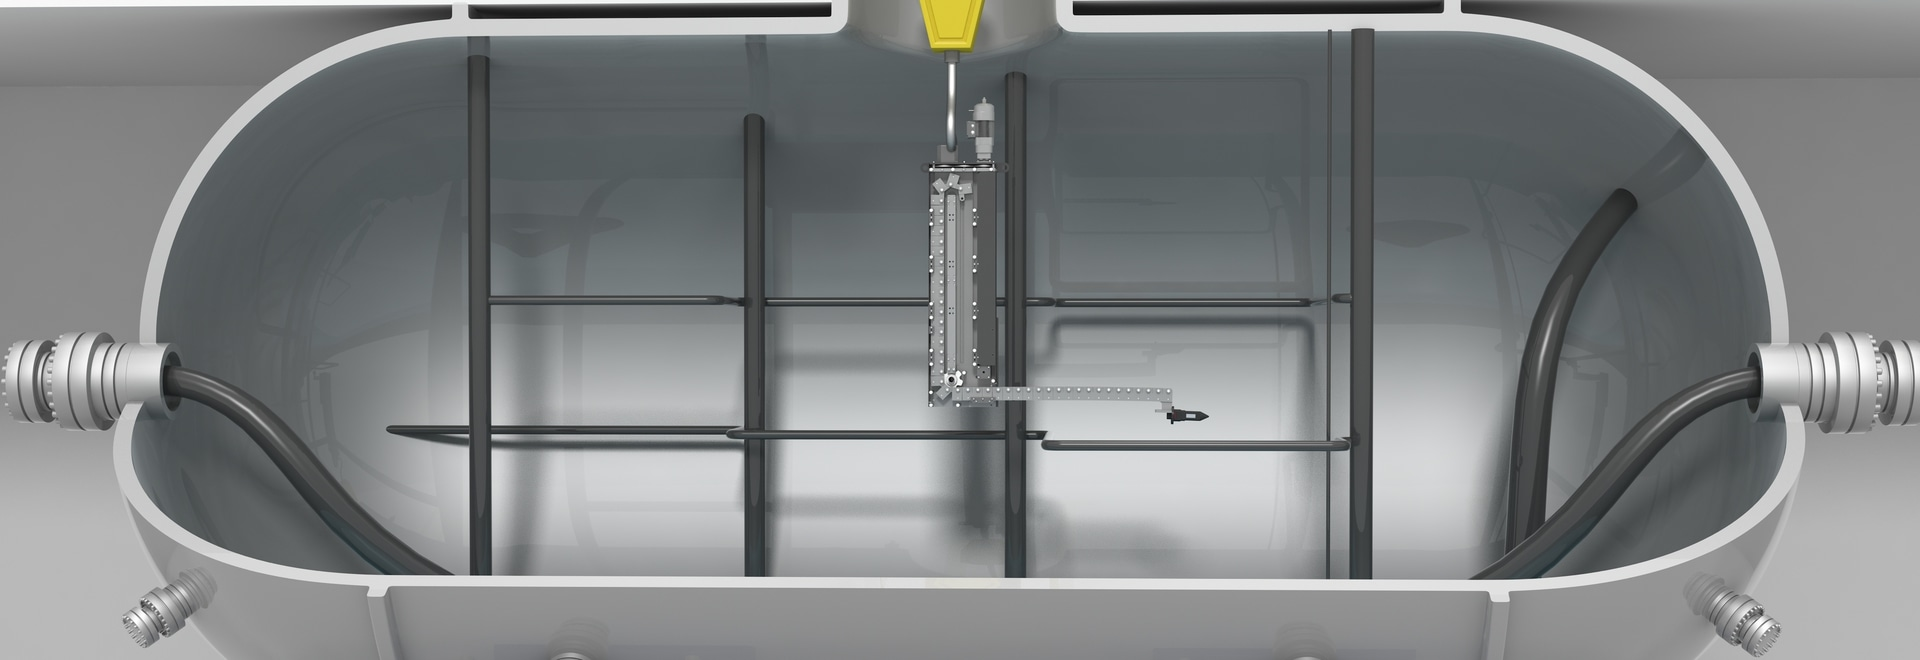 TELESCOPIC JIBS  FOR INTERVENTION  IN CONFINED ENVIRONMENTS